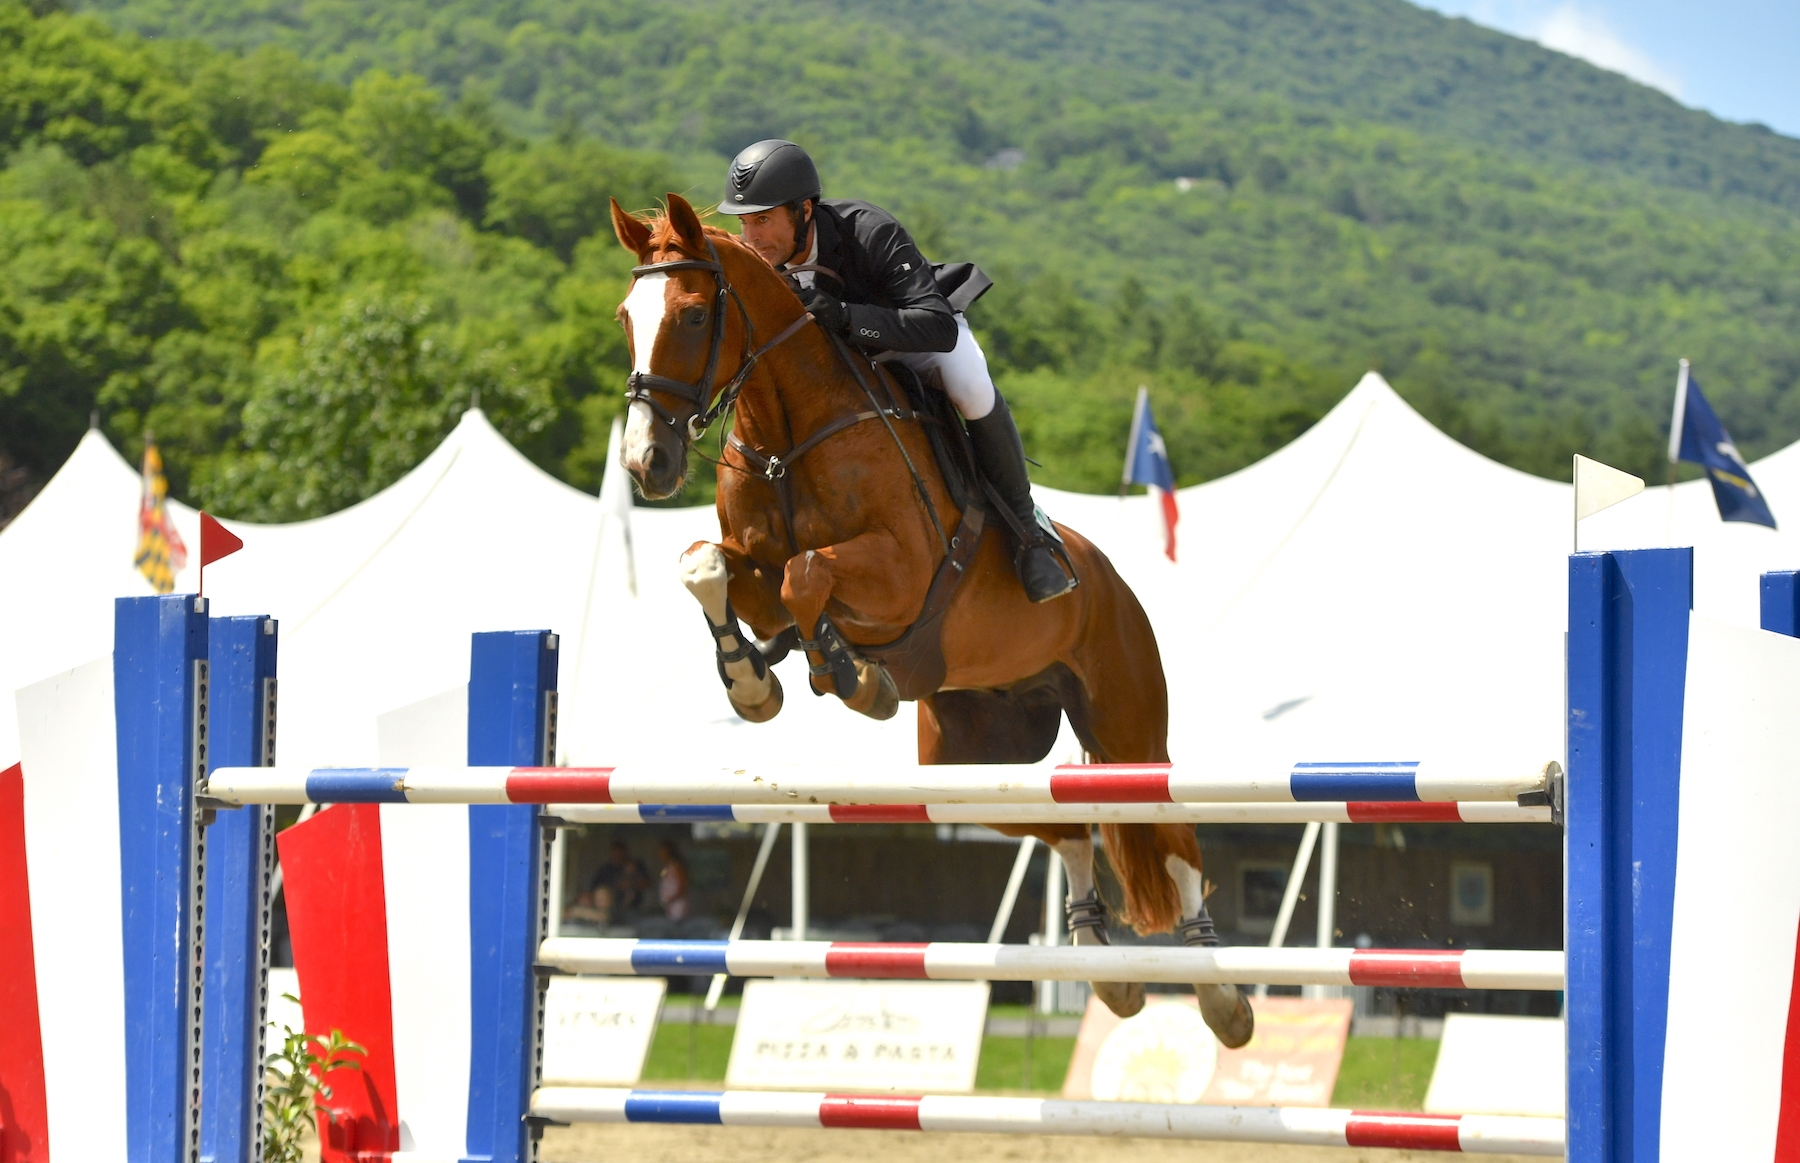 Kirk Webby won his second grand prix of the Vermont Summer Festival season in the $30,000 Battenkill Grand Prix, presented by Hampton Inn & Suites Manchester, riding Brando du Rouet on Saturday, July 13, in East Dorset, VT.<br><b>Photo by <a href='https://www.andrewryback.com/' target='_blank'>Andrew Ryback Photography</a></b>